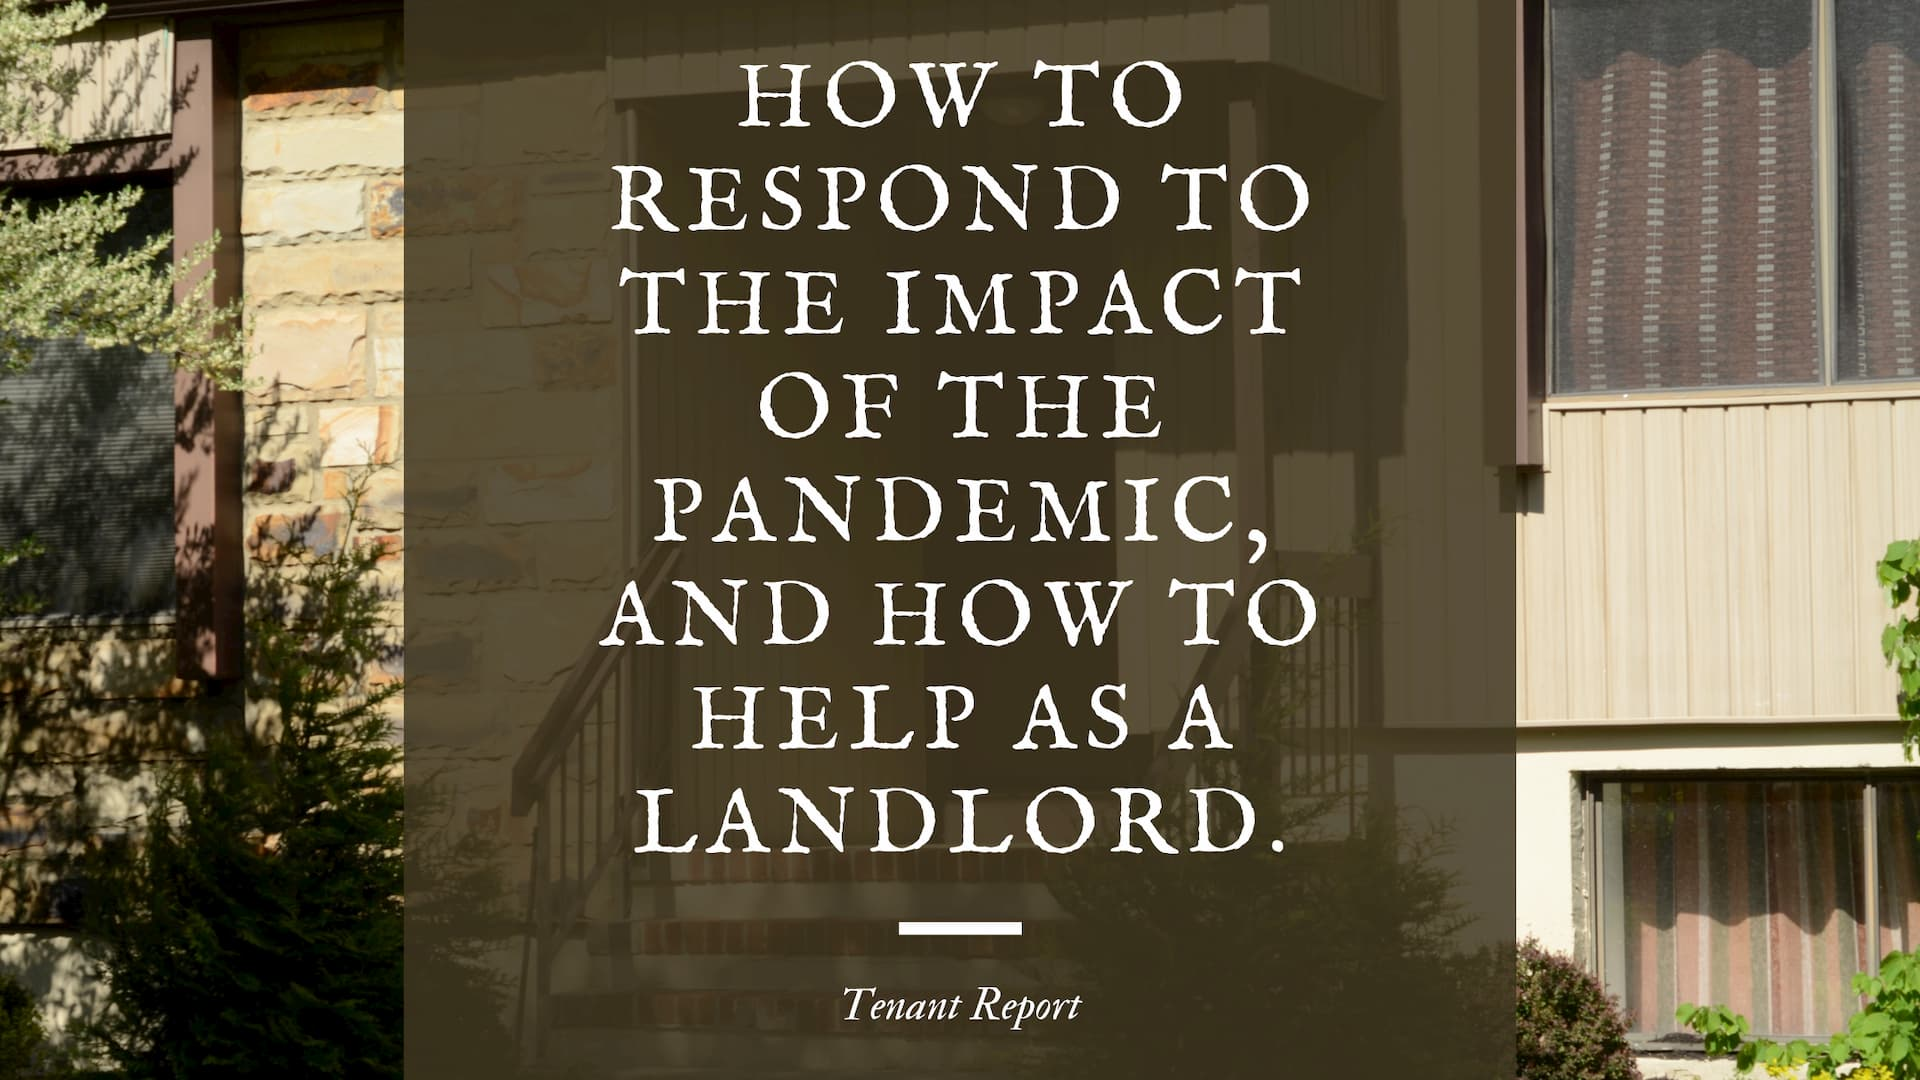 Tenant-Report-How-to-Respond-to-the-Impact-of-the-Pandemic-resized